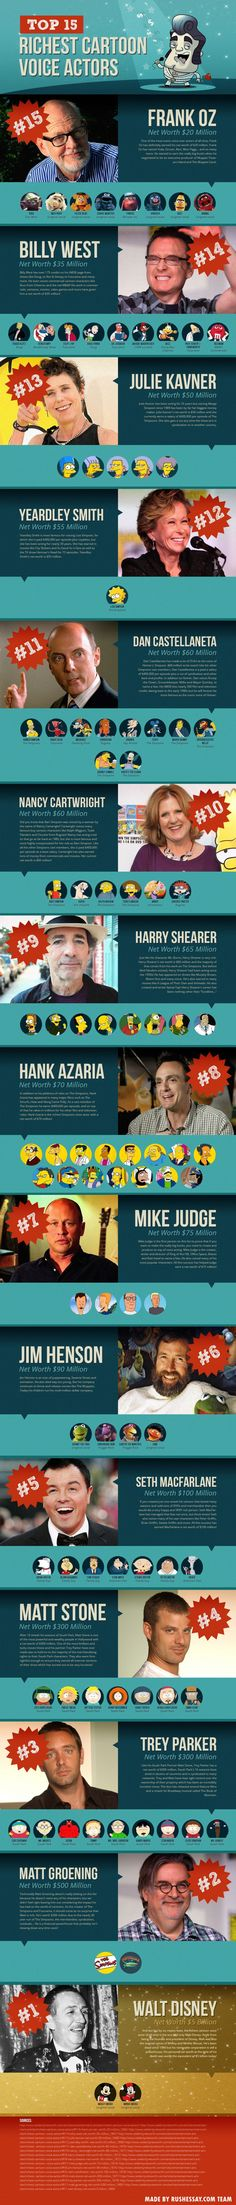 "Top 15 Richest Cartoon Voice Actors Infographic (=^.^=) Thanks, Pinterest Pinners, for stopping by, viewing, re-pinning, & following my boards.  Have a beautiful day! ^..^ and ""Feel free to share on Pinterest ^..^ #comicbookheros #unocollectibles"